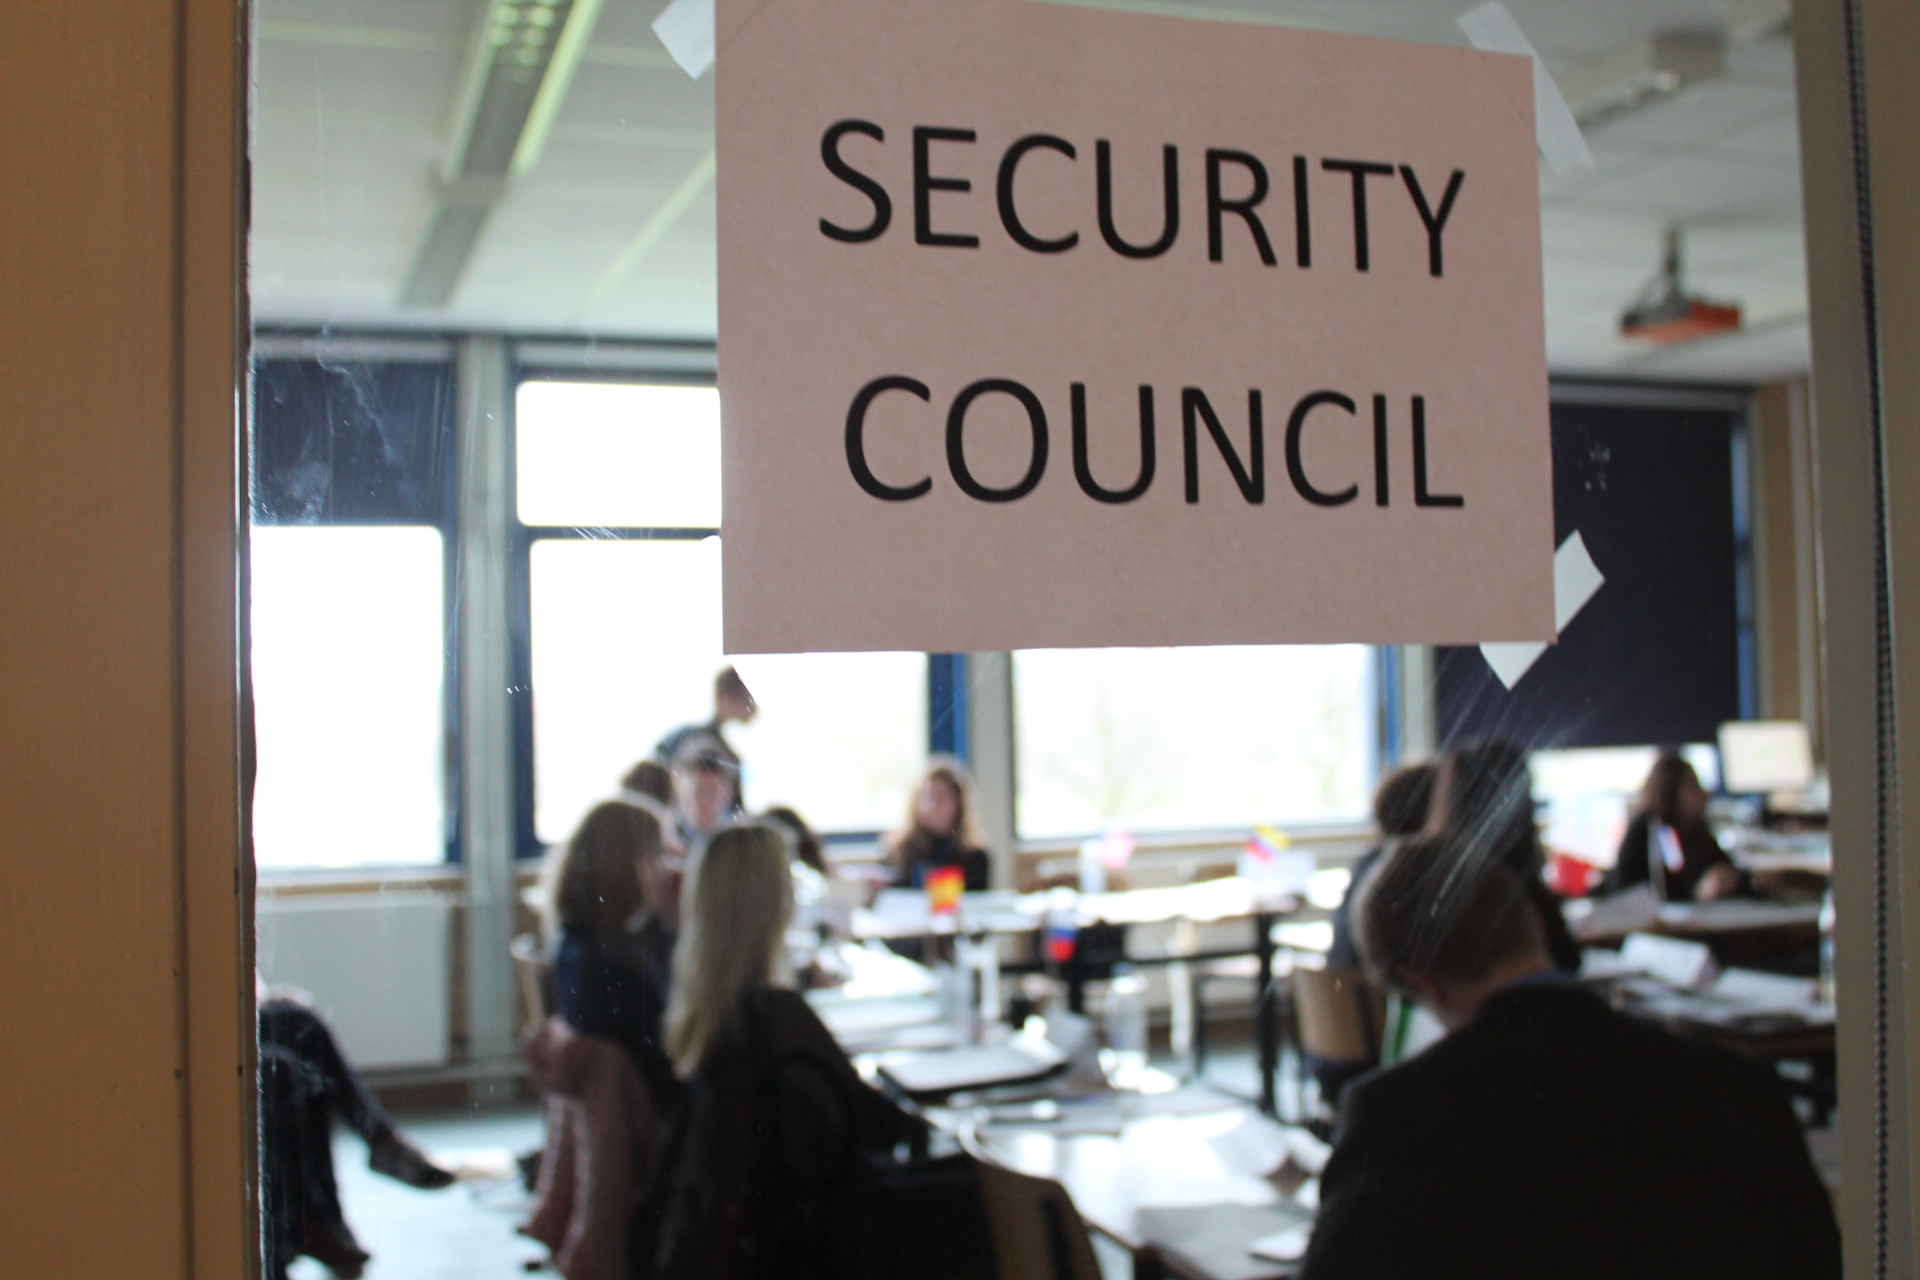 DAY 1: SECURITY COUNCIL